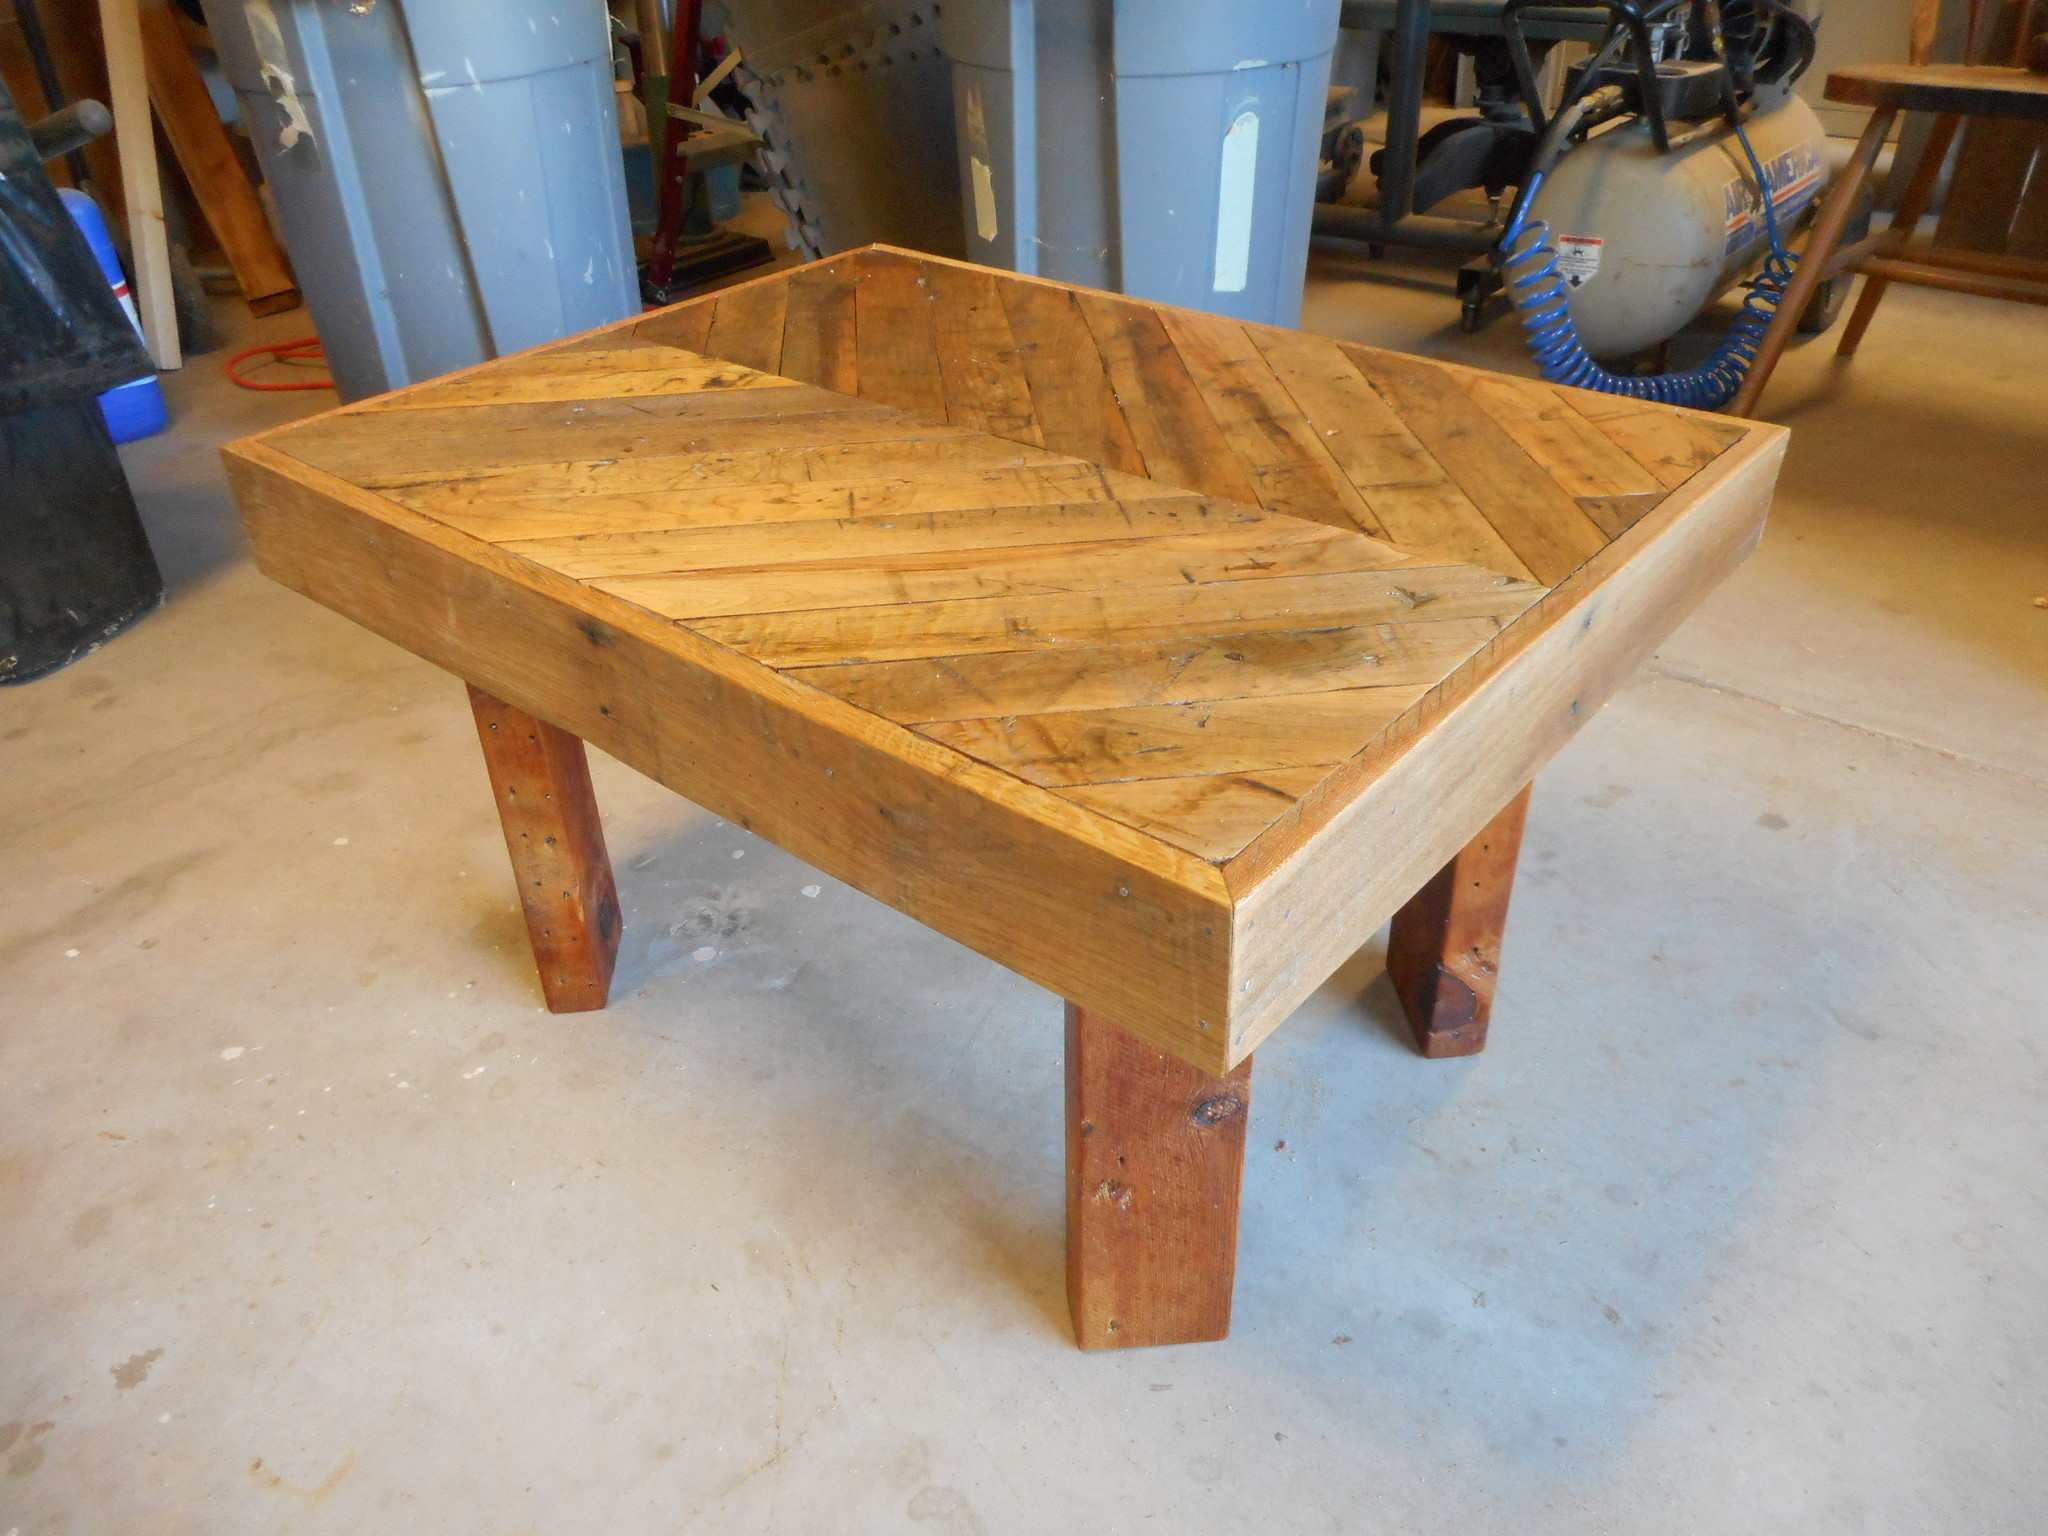 Customer's table made from reclaimed lumber